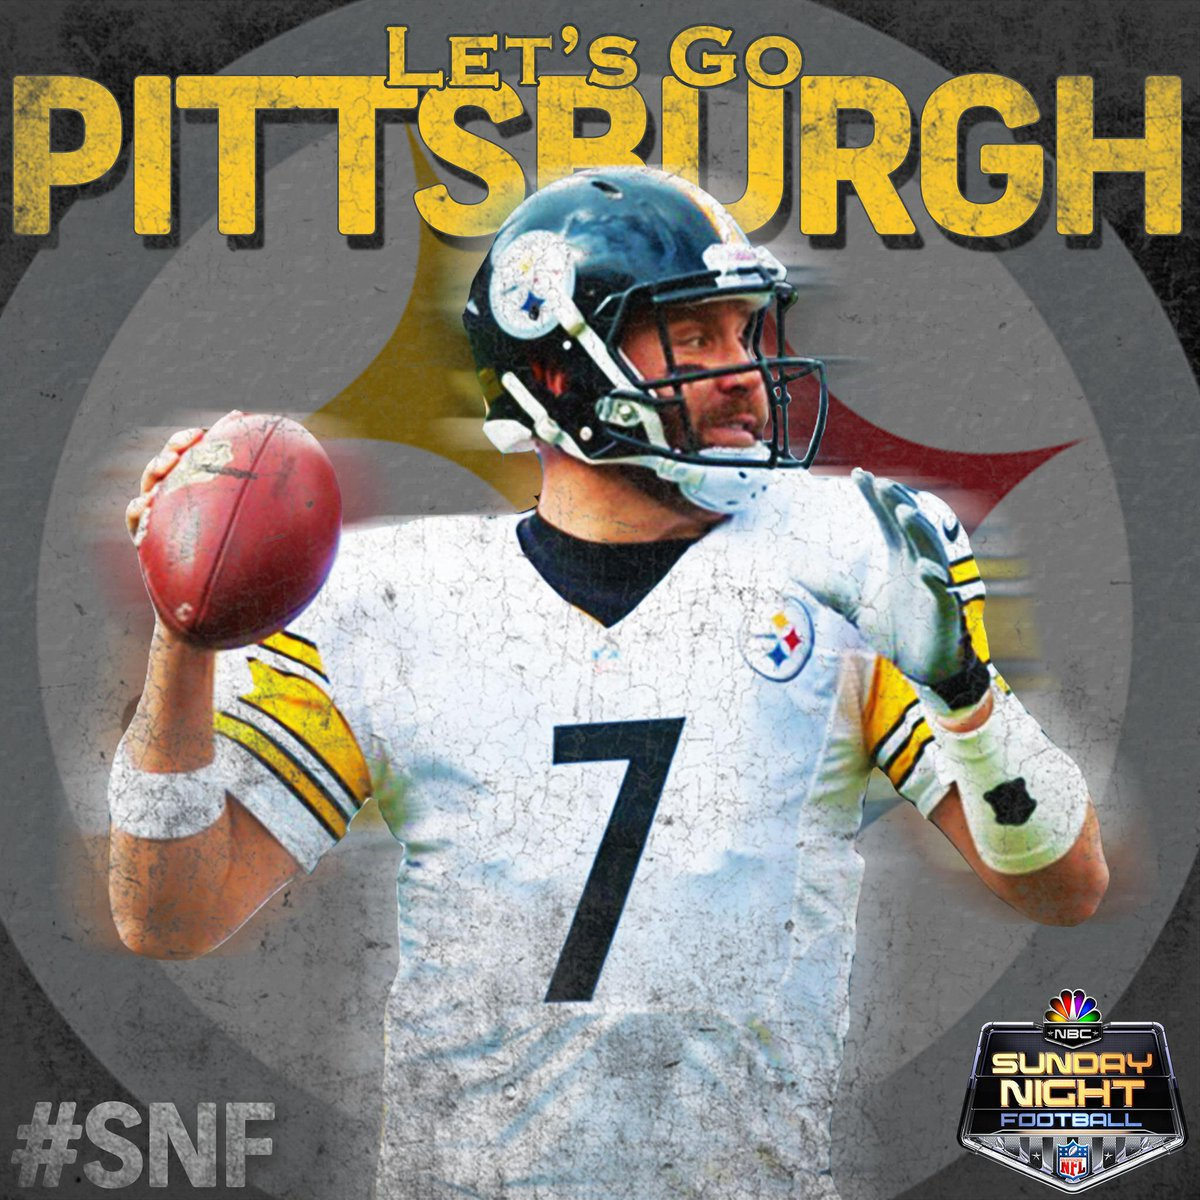 ReTweet this if you'll be watching the @Steelers tomorrow night! #SNF http://t.co/sgLyDAtc3g